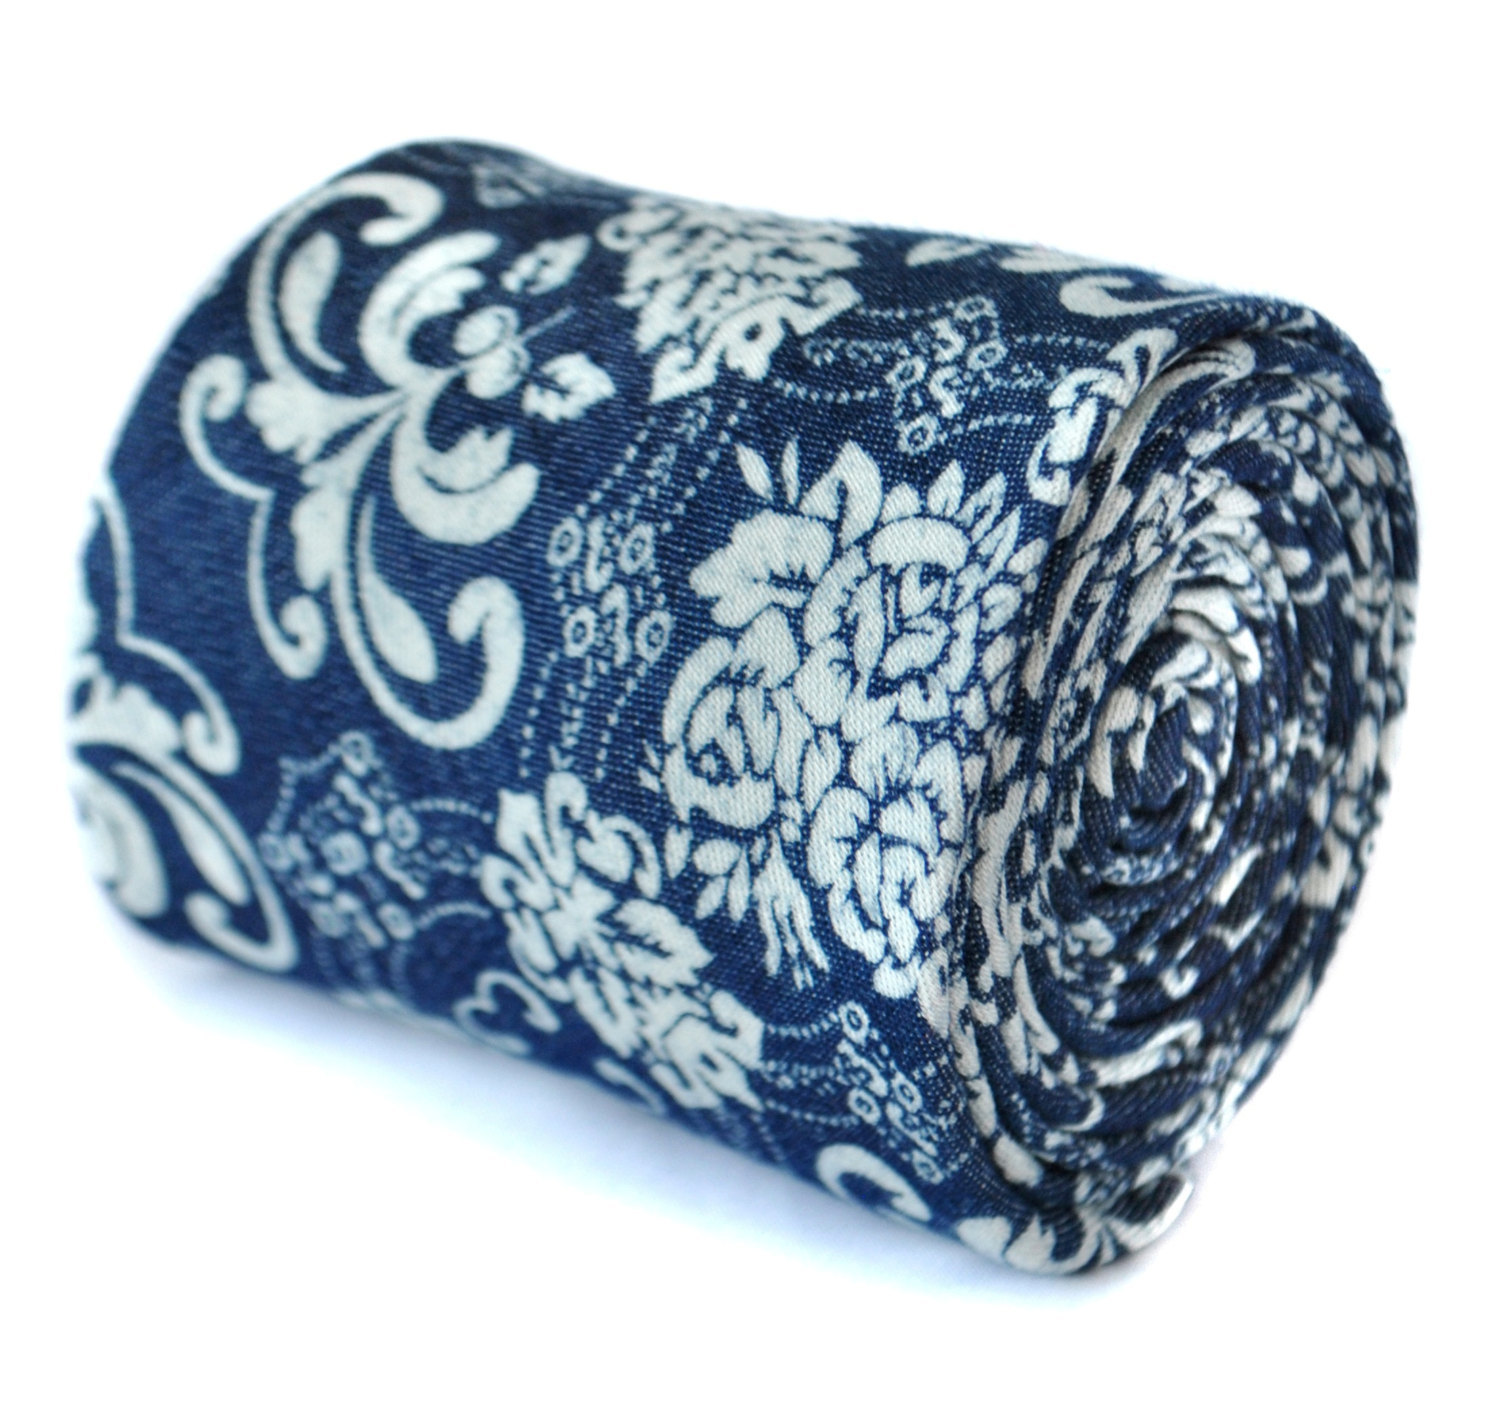 navy dark blue with damask paisley design 100% cotton linen tie by Frederick Tho